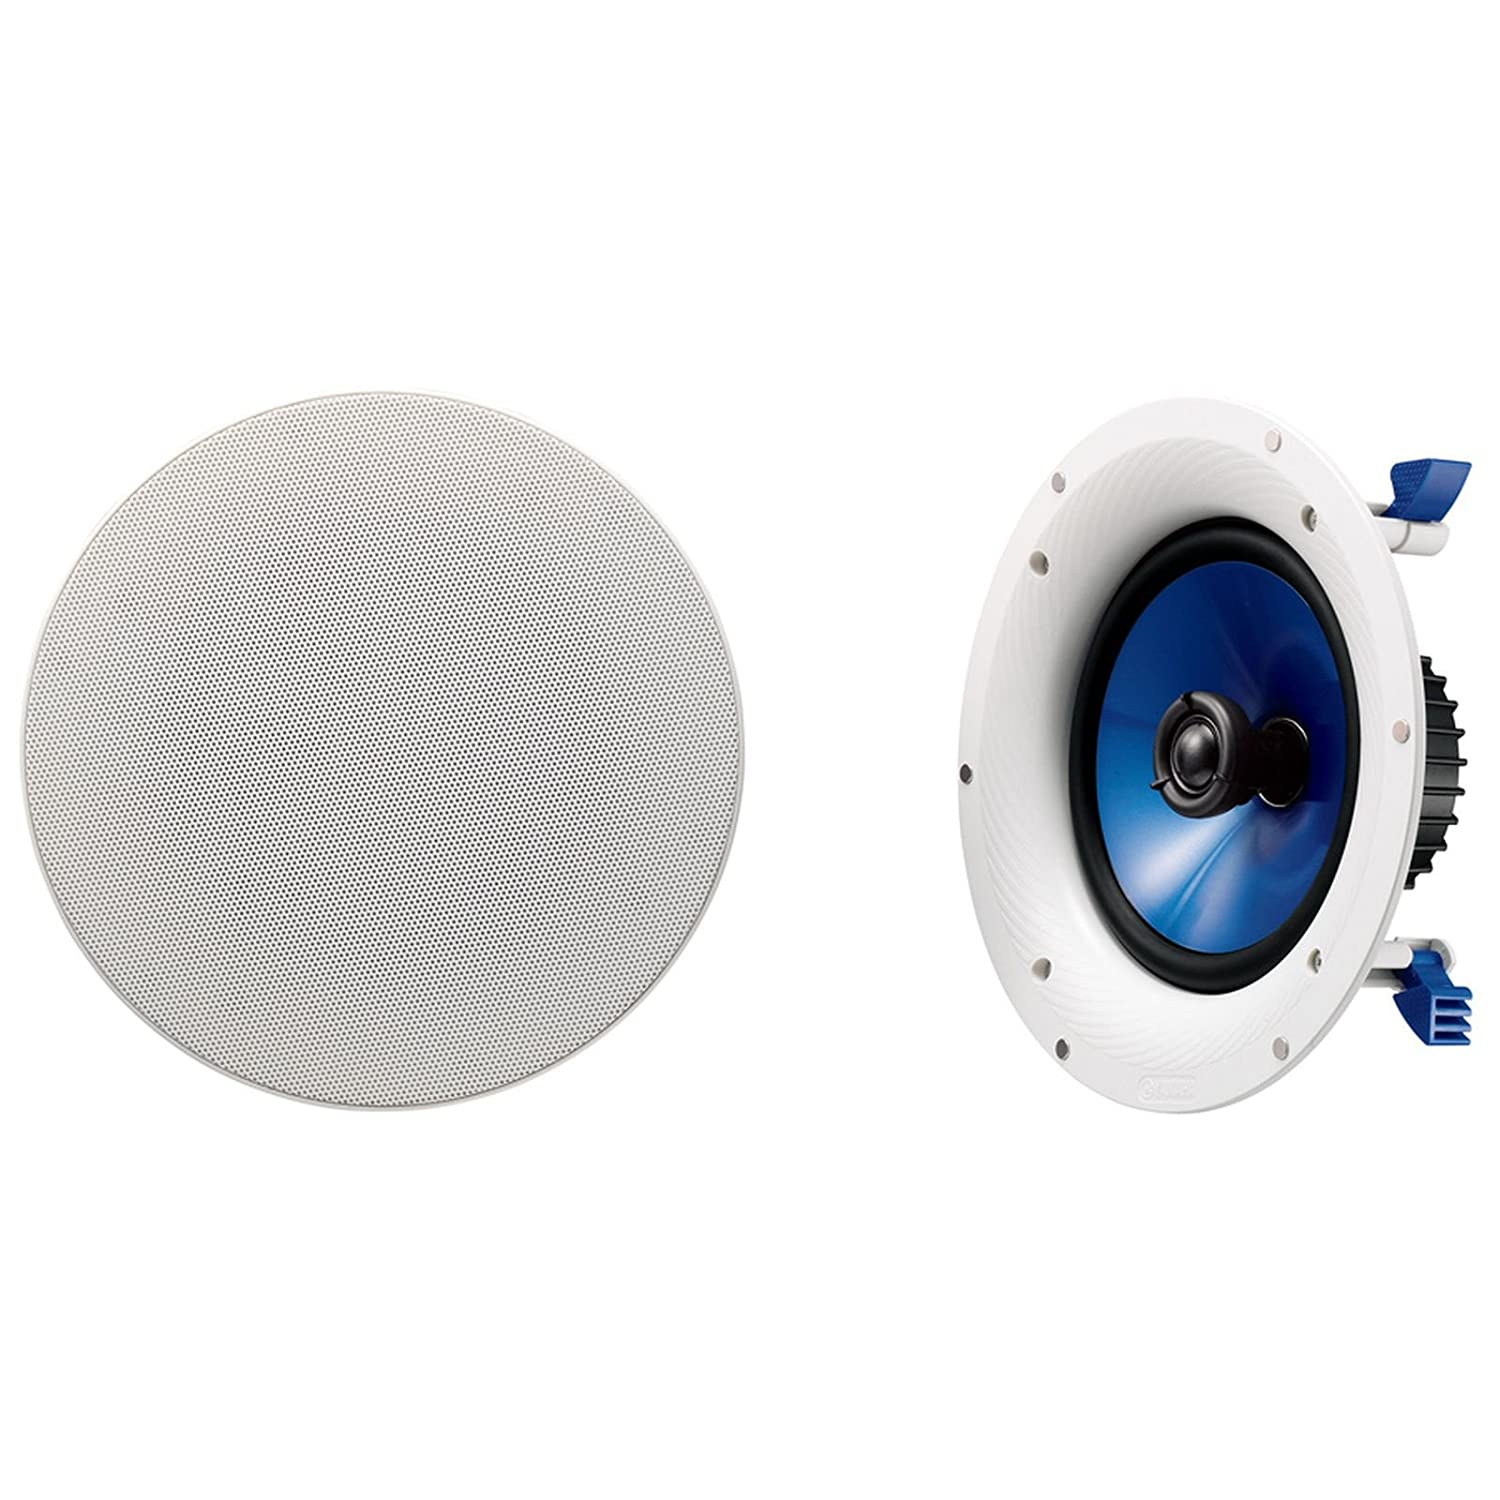 Waterproof ceiling speakers for bathroom -  4 Yamaha Nsic800wh 140 Watts Bluetooth Ceiling Speakers